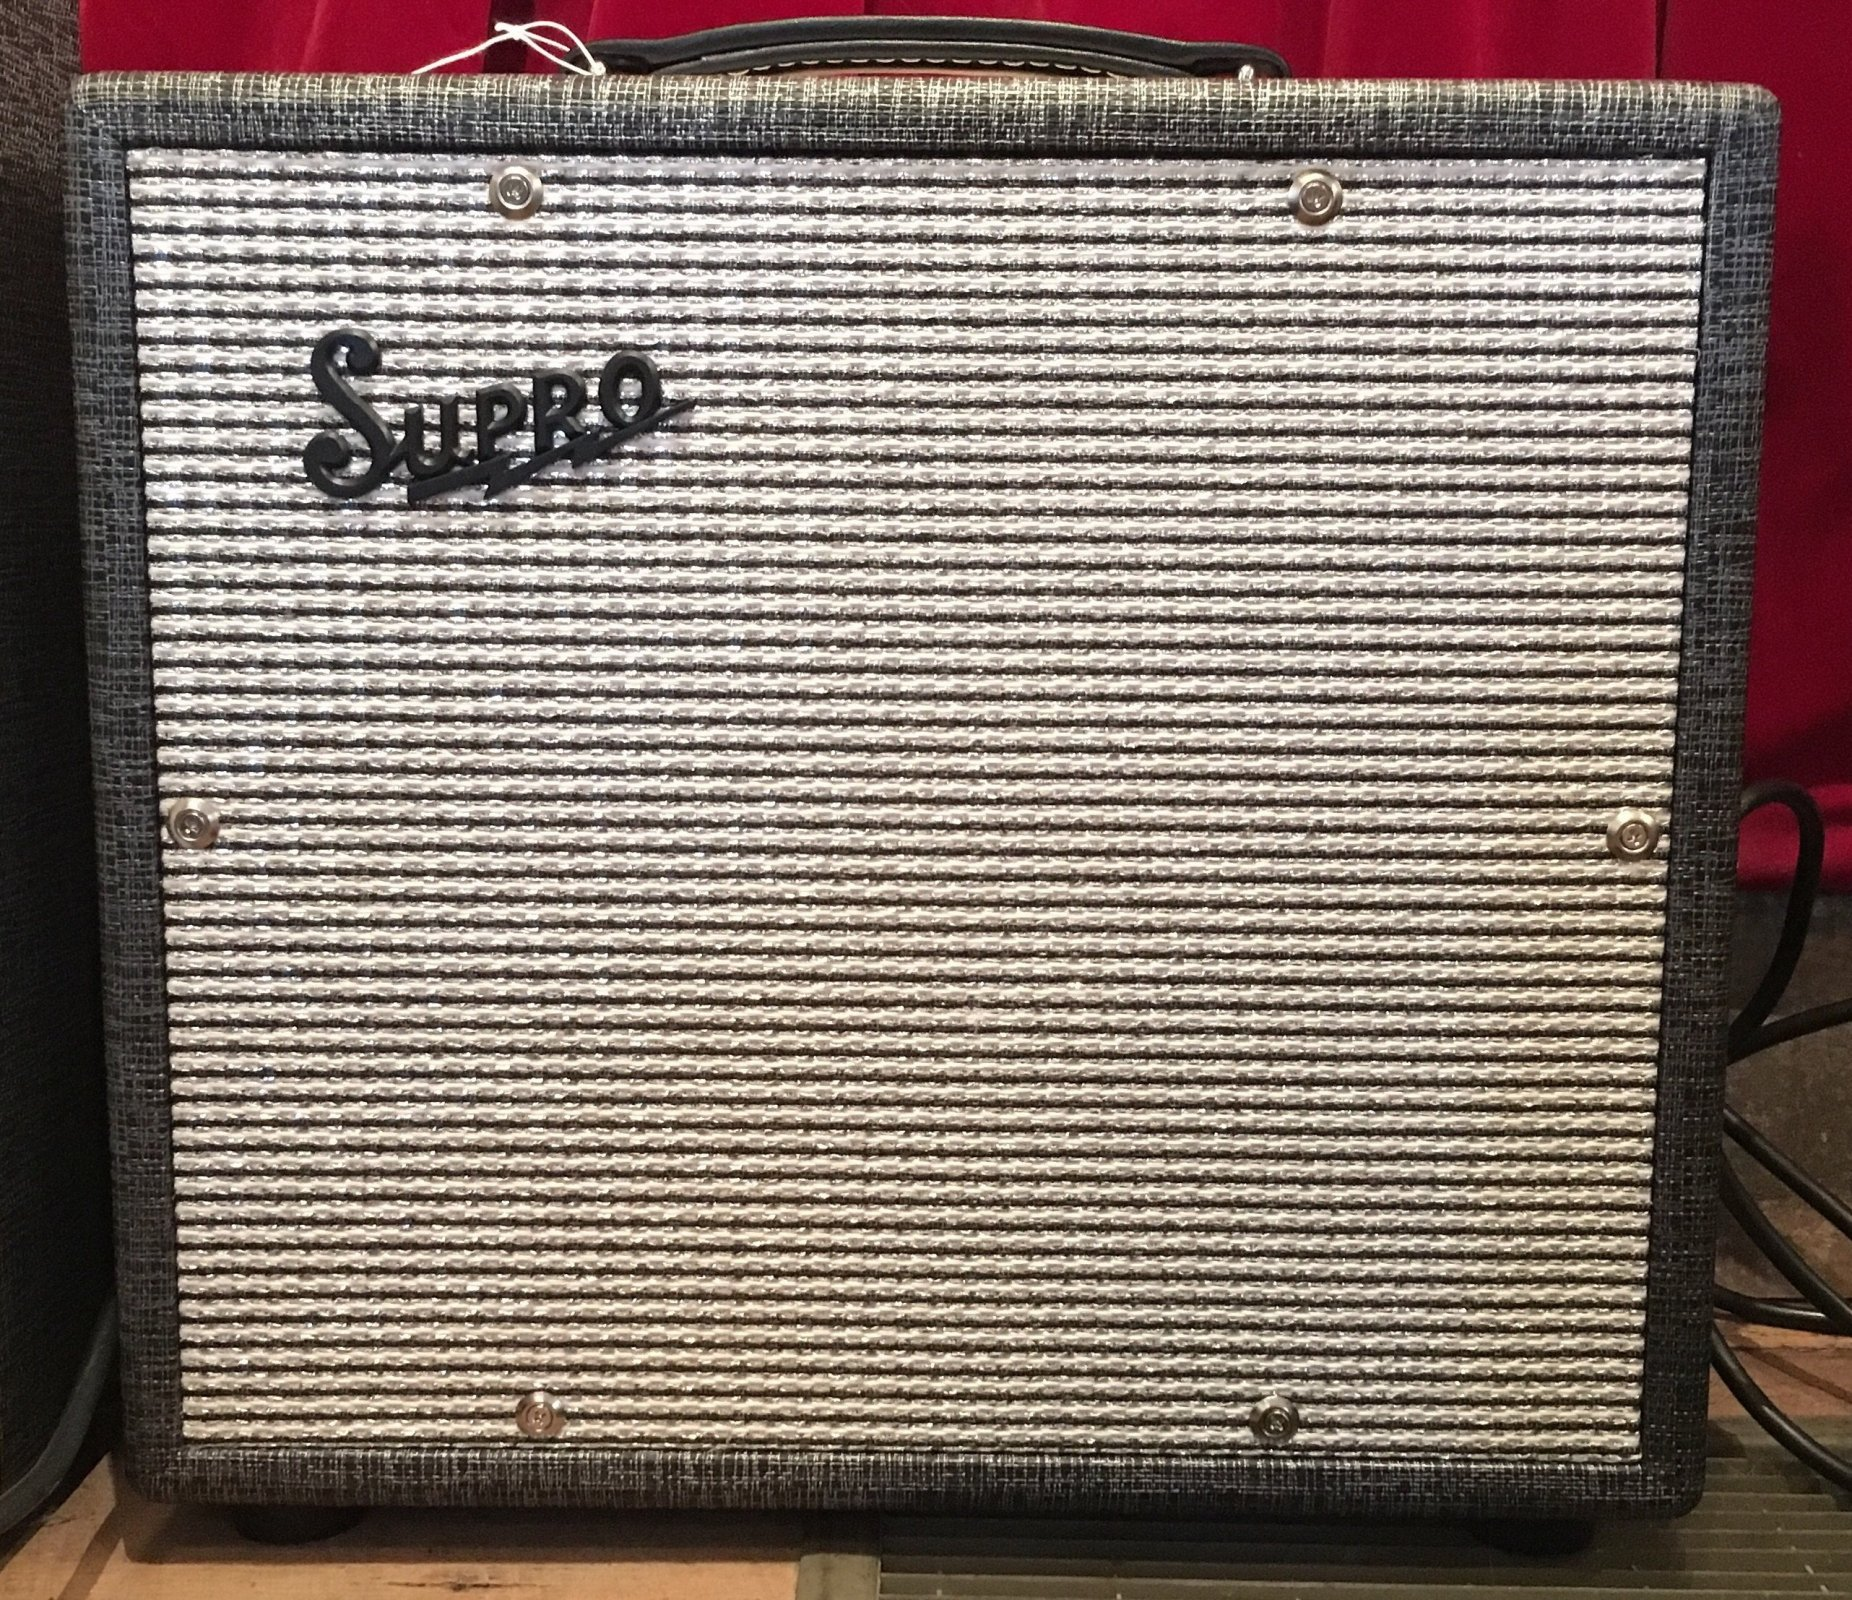 Supro 1700 Supreme 1x12 Extension Cabinet